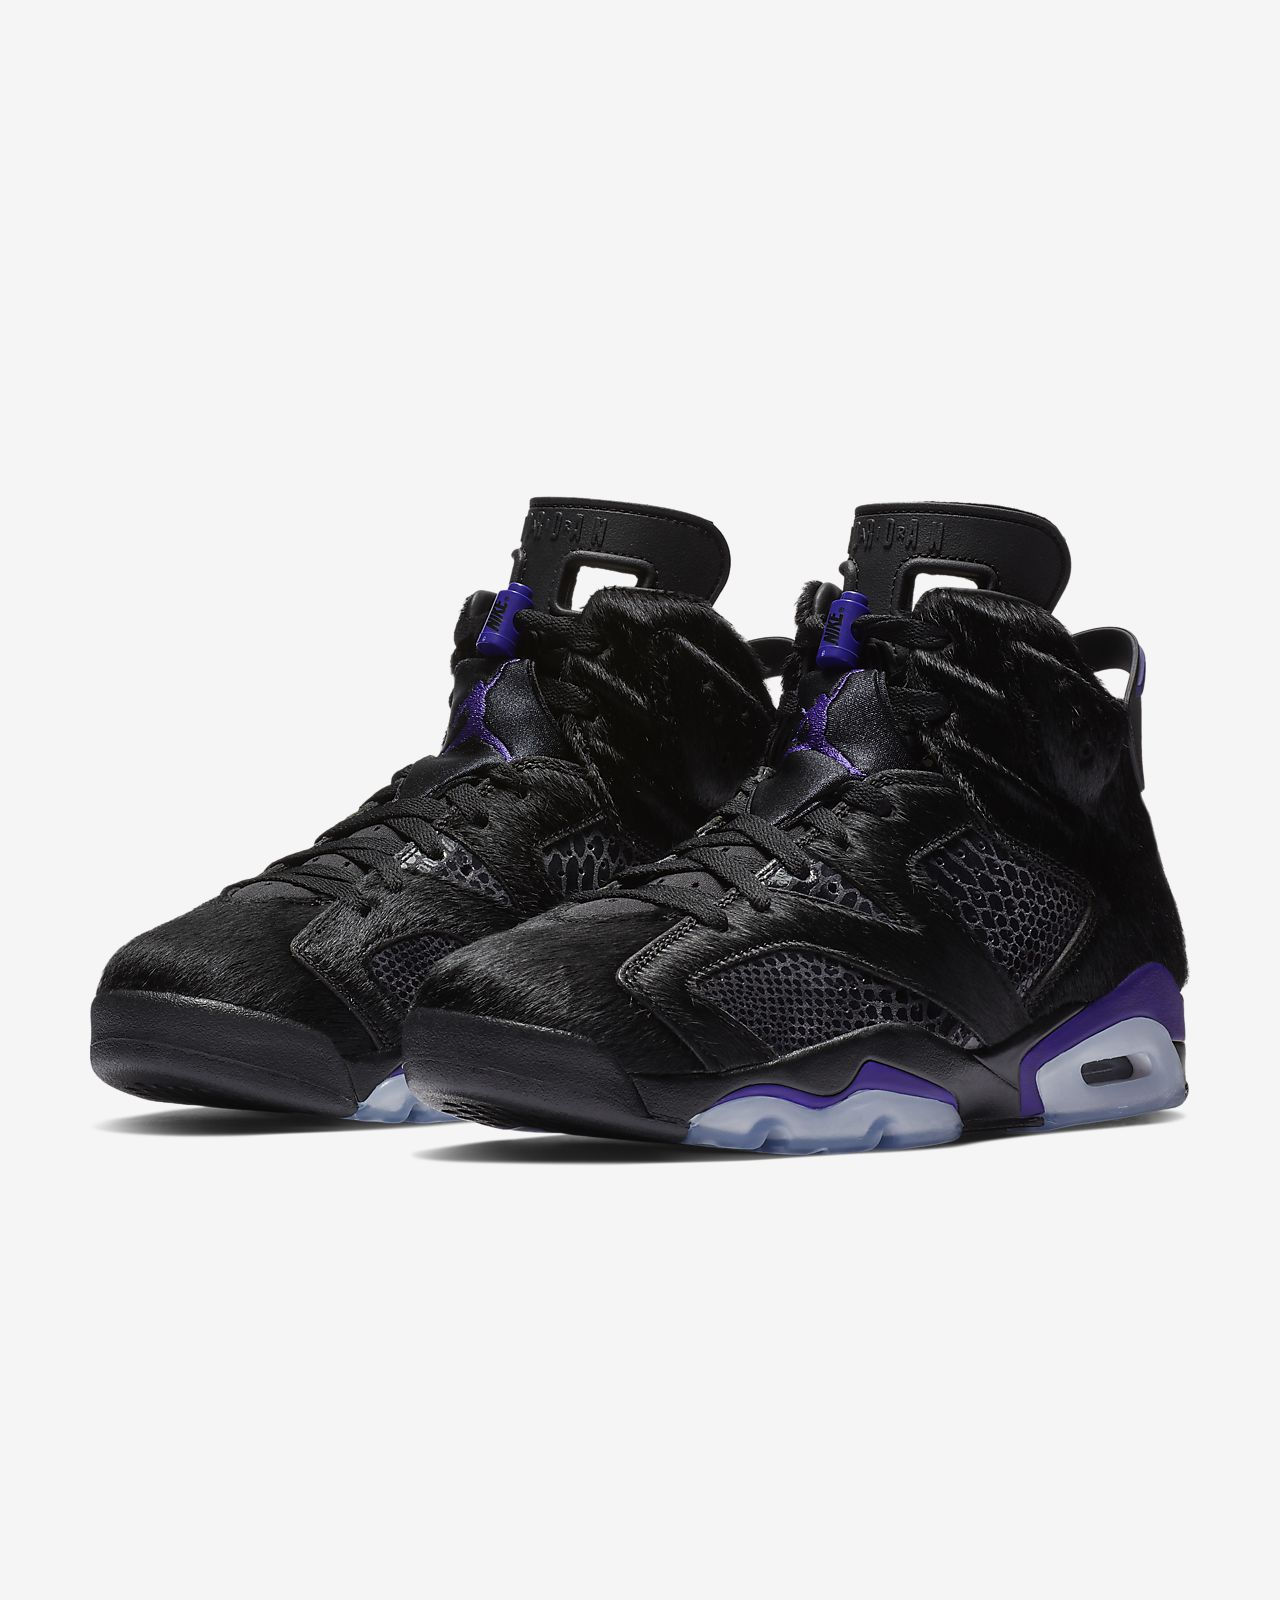 big sale 2c9bd 27bd4 ... Sko Air Jordan 6 Retro för män